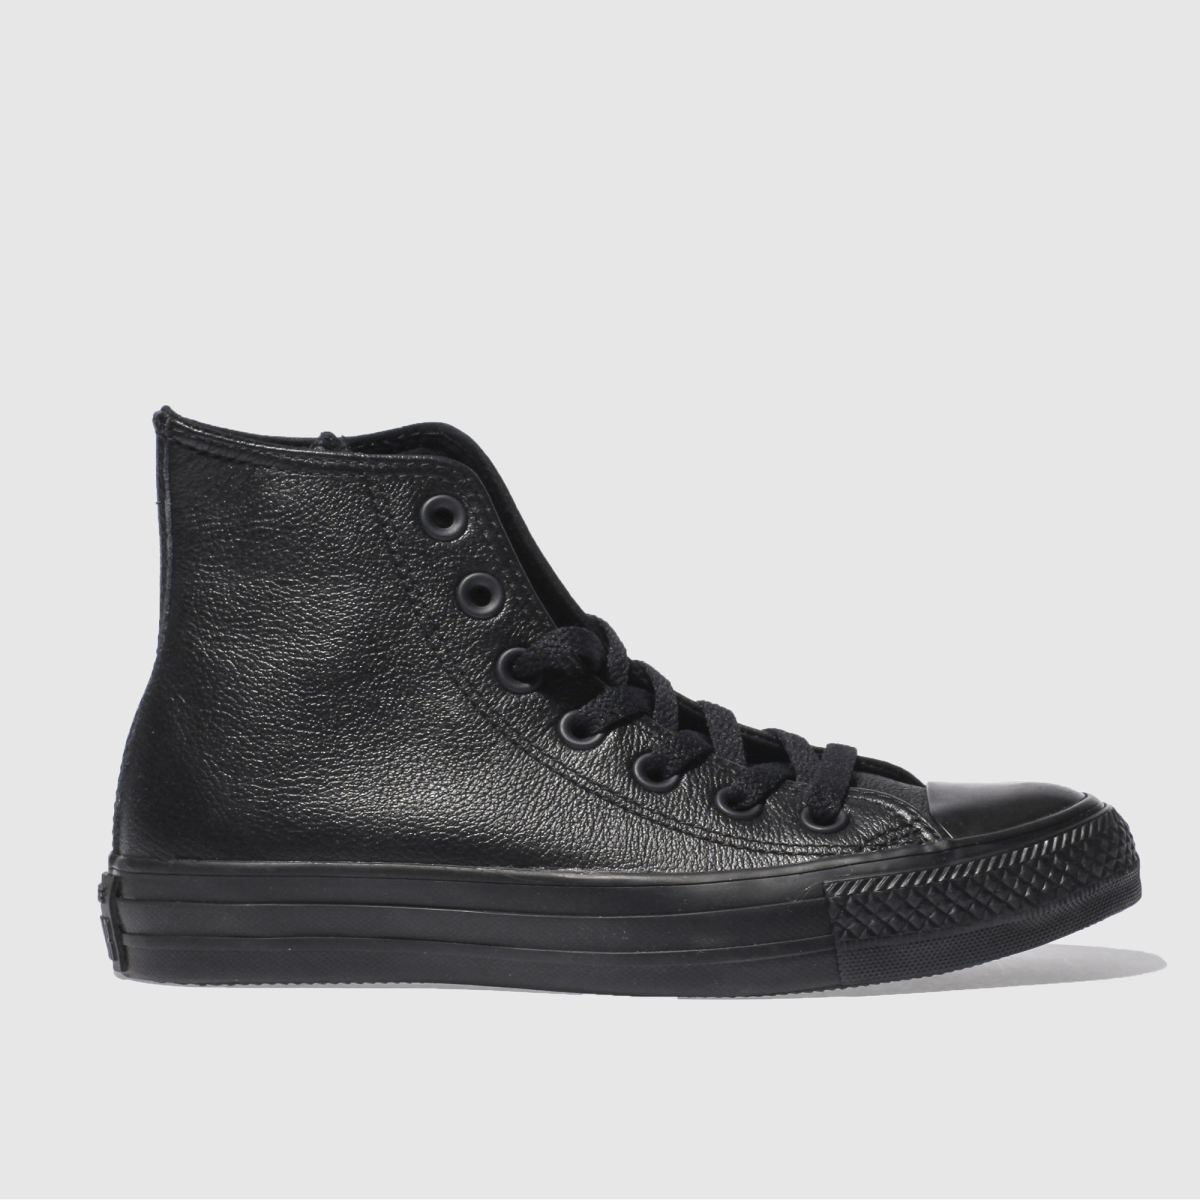 Converse Black Hi Vi Leather Trainers